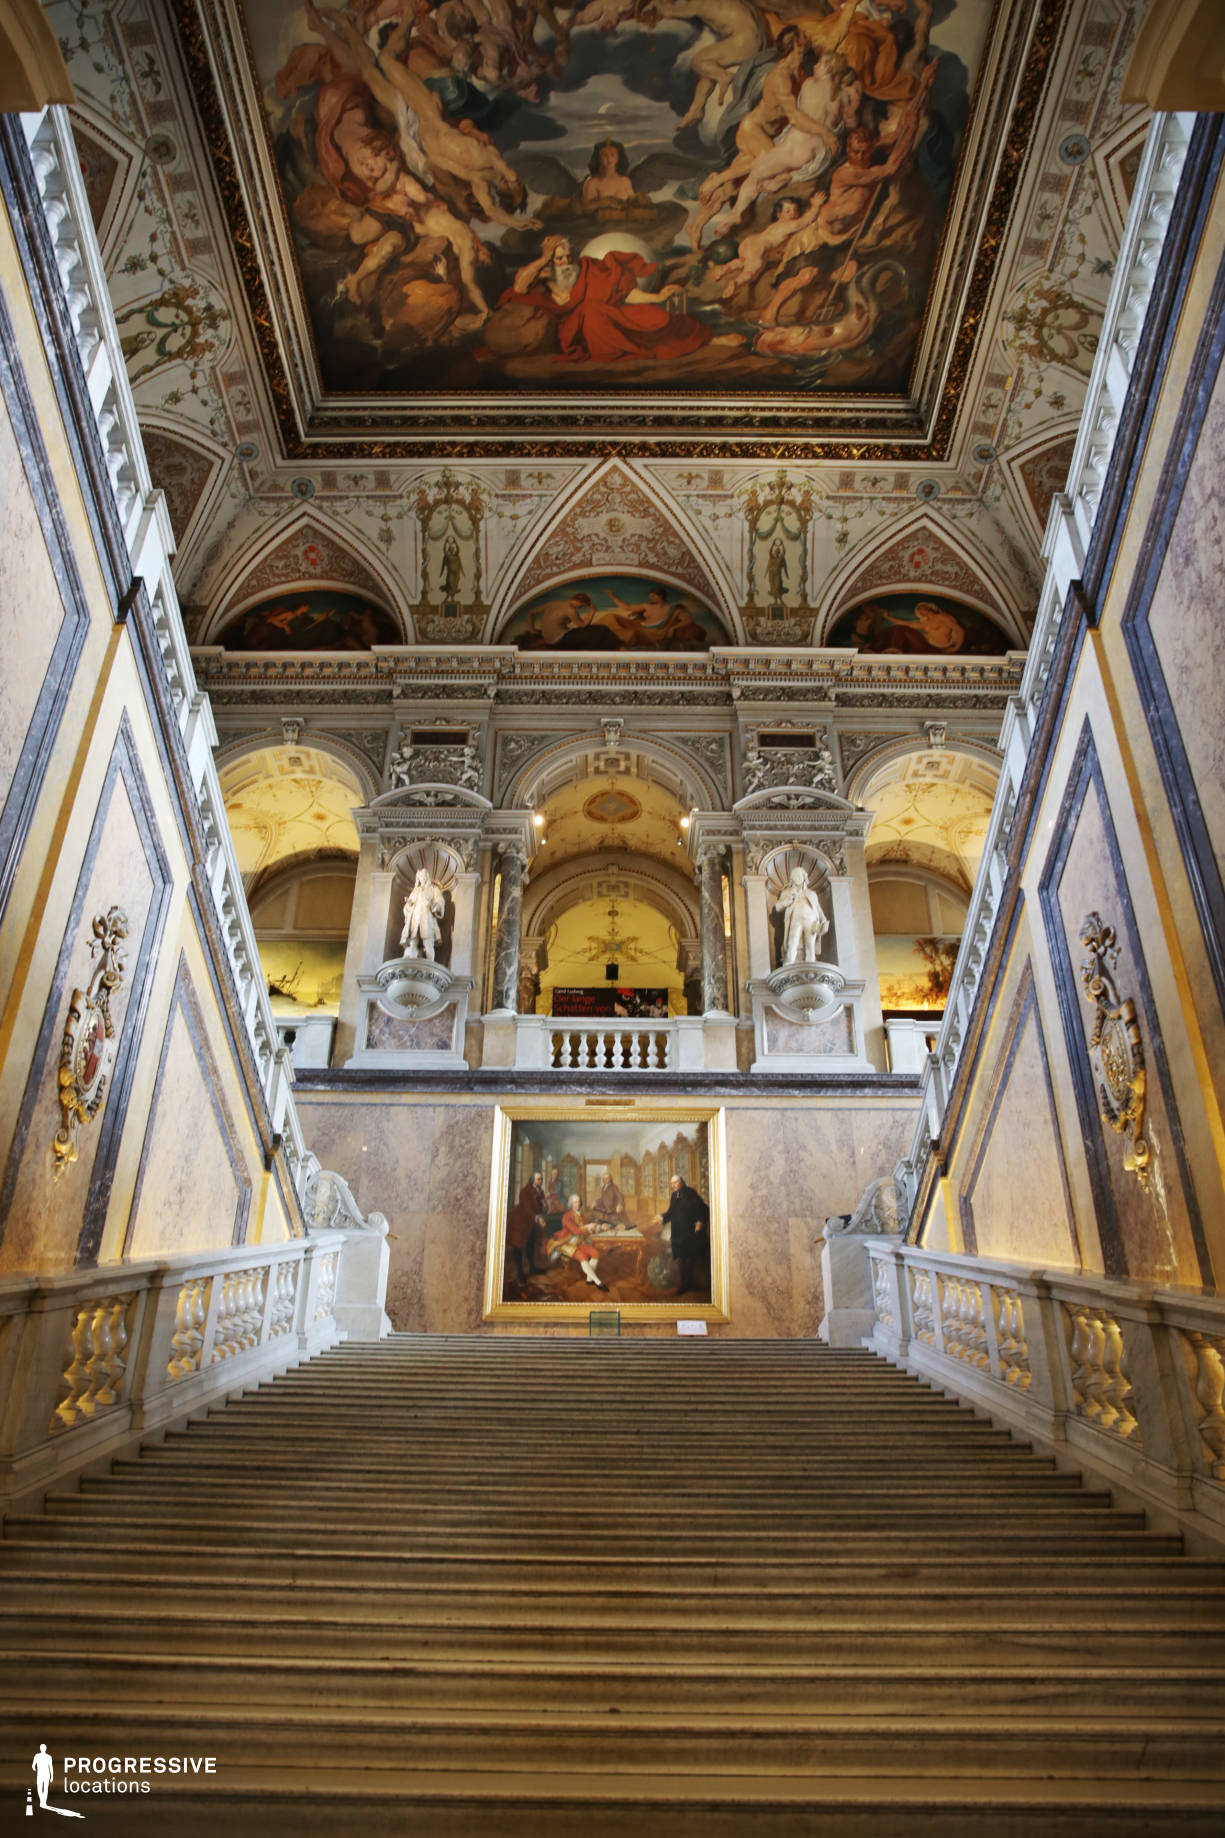 Locations in Austria: Main Staircase, Natural History Museum